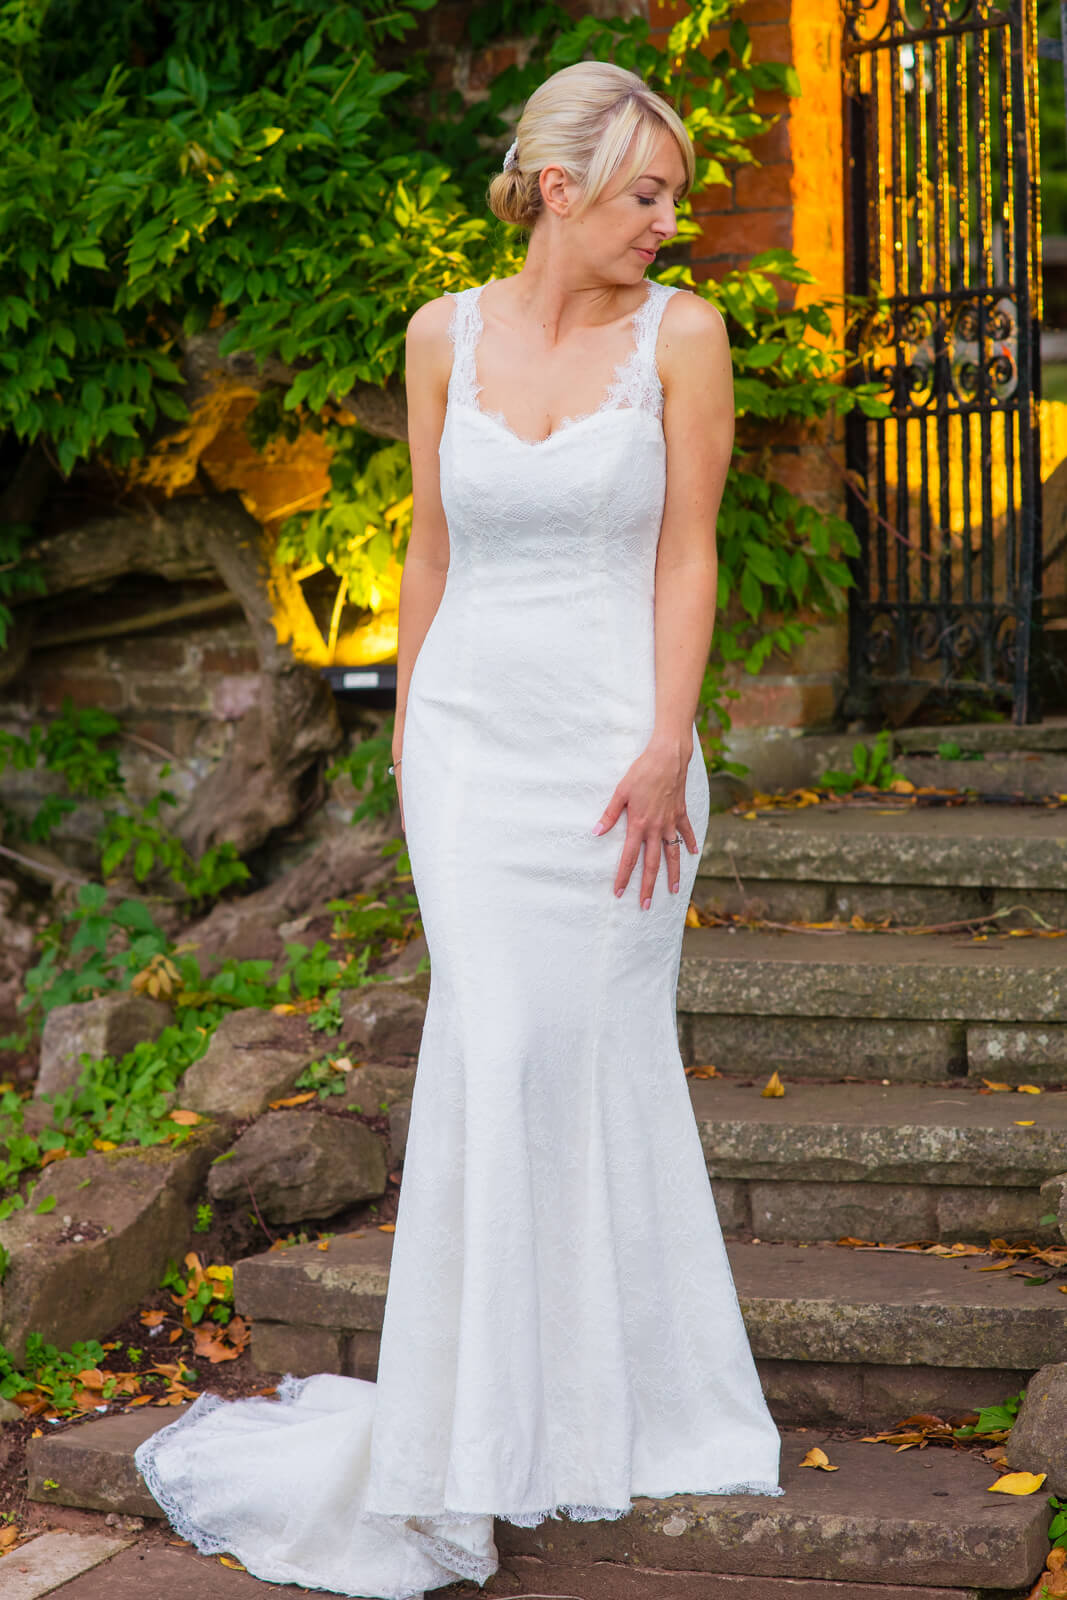 Bride stands infront of metal gate with golden evening sun